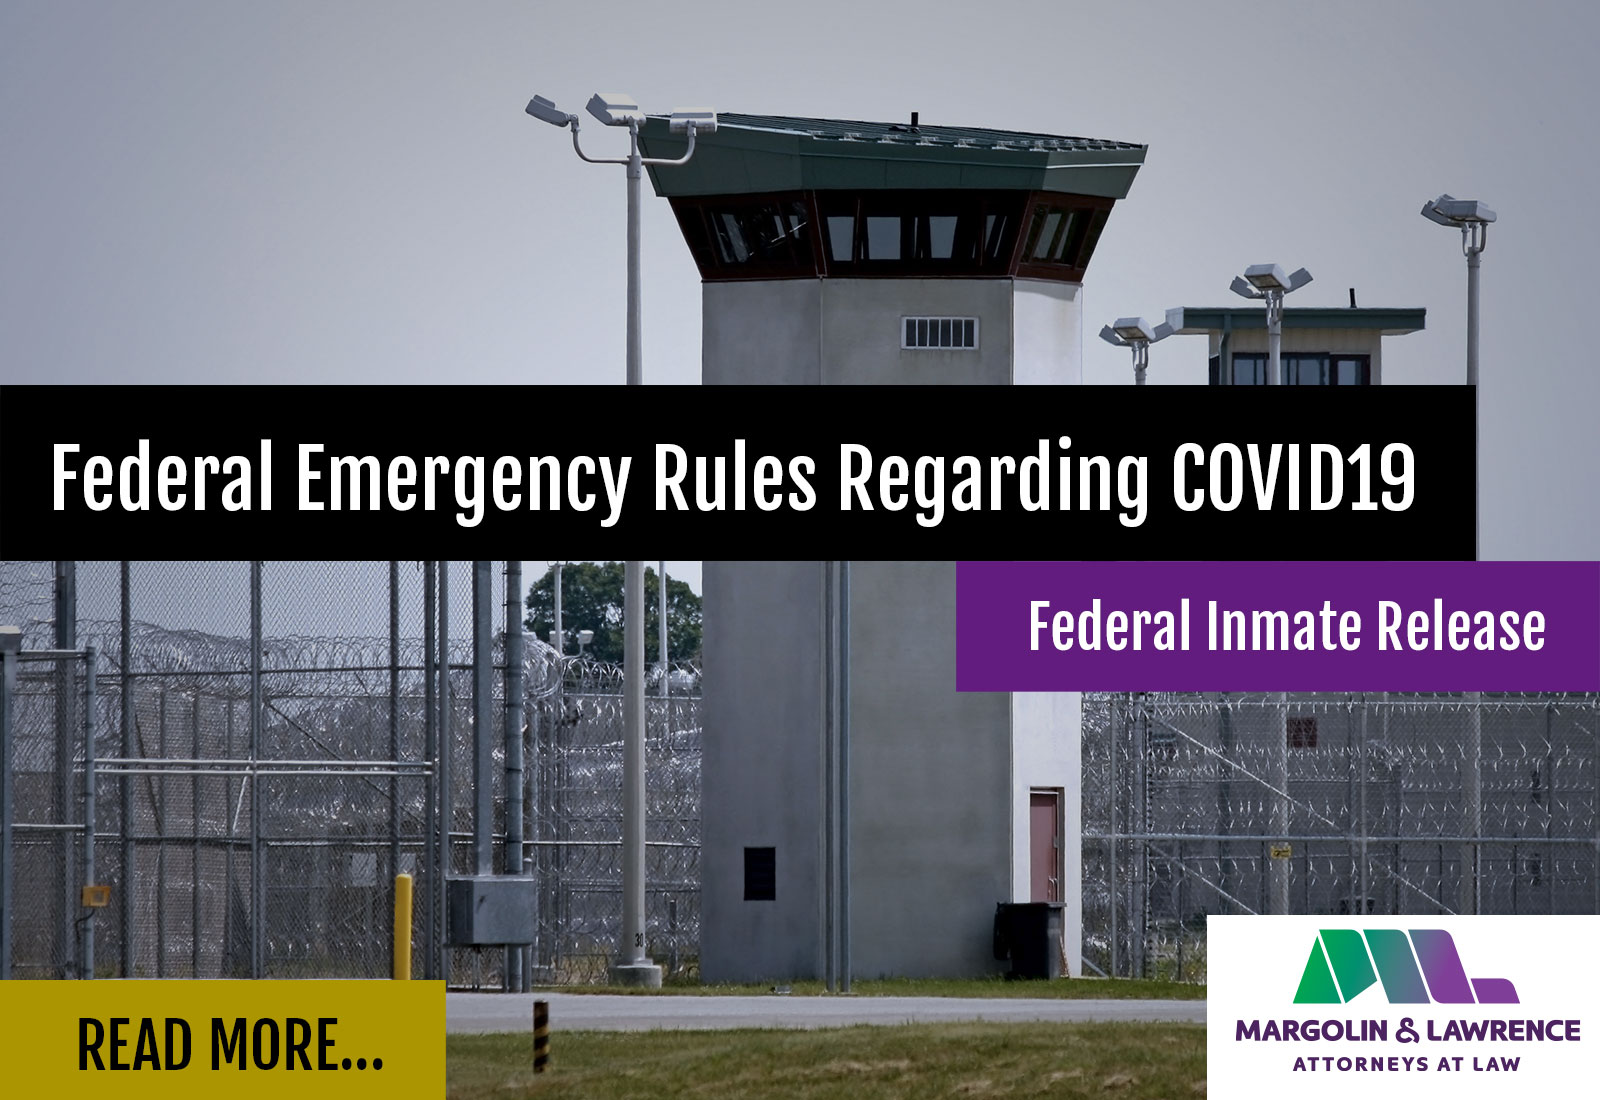 Federal Emergency Rules Regarding COVID-19 (Federal Inmate Release)